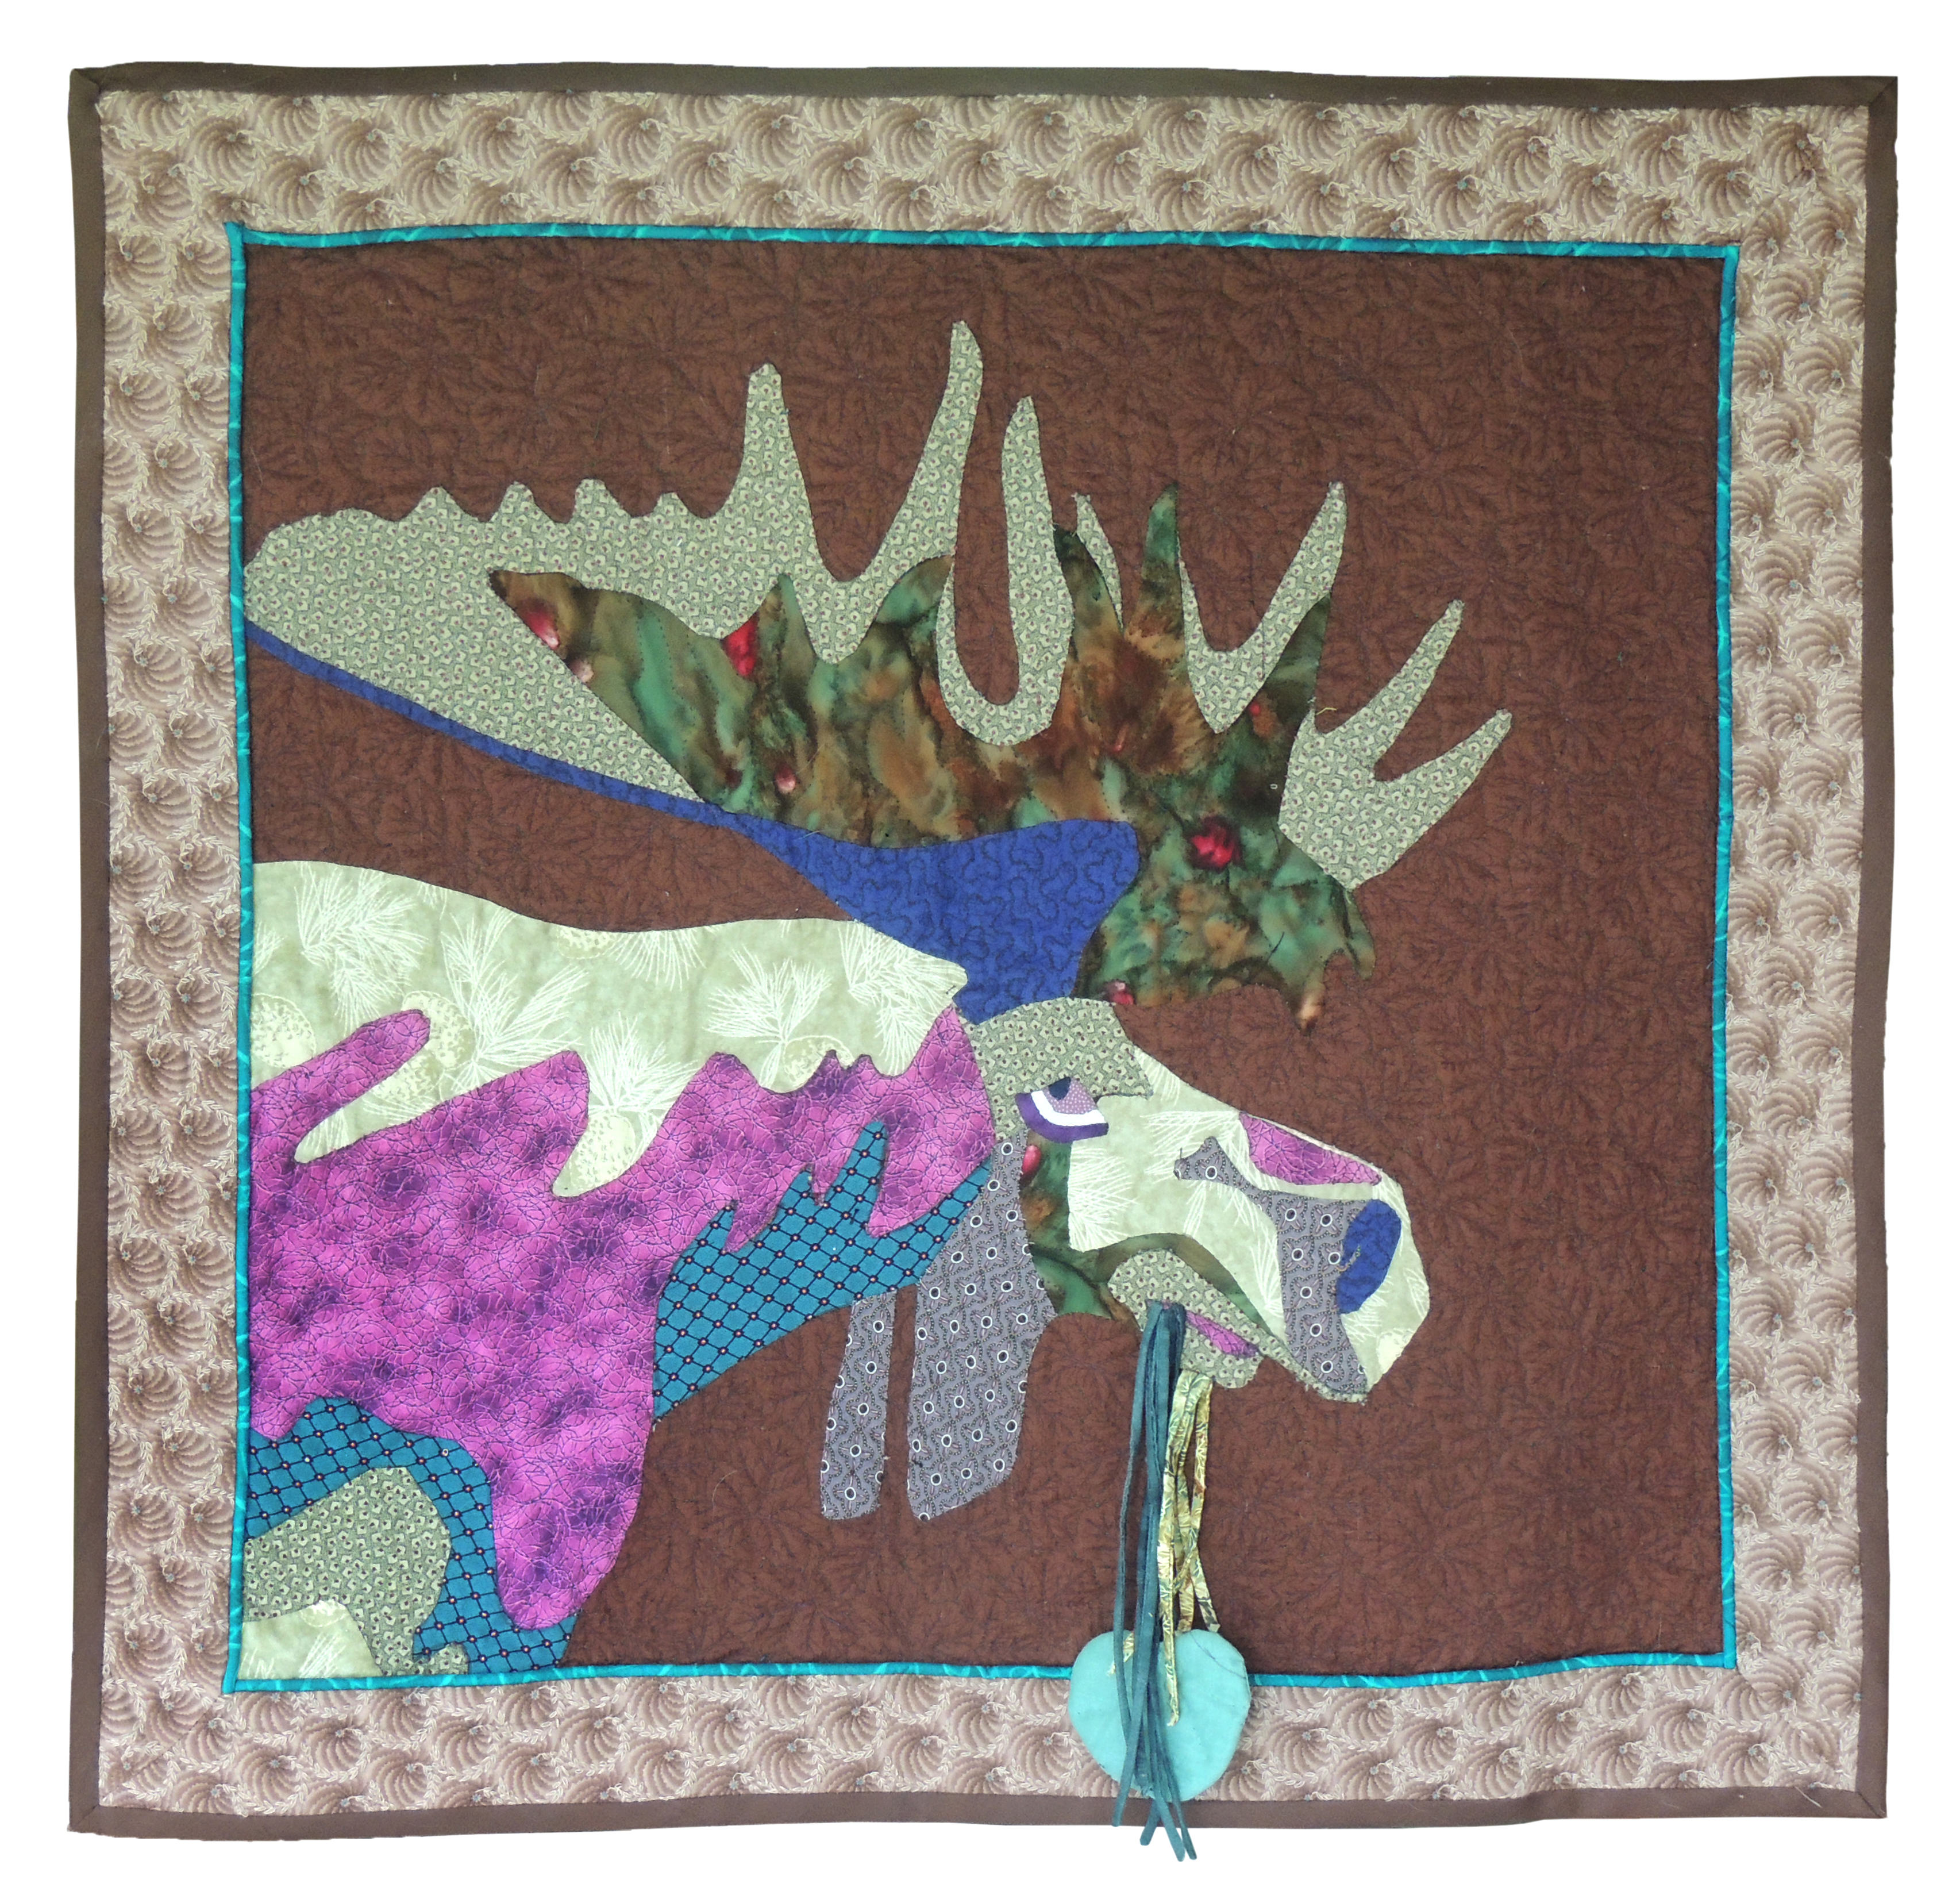 Marianne Rabb Britton | MOOSE | Fabric & Embroidery | 29 x 30"